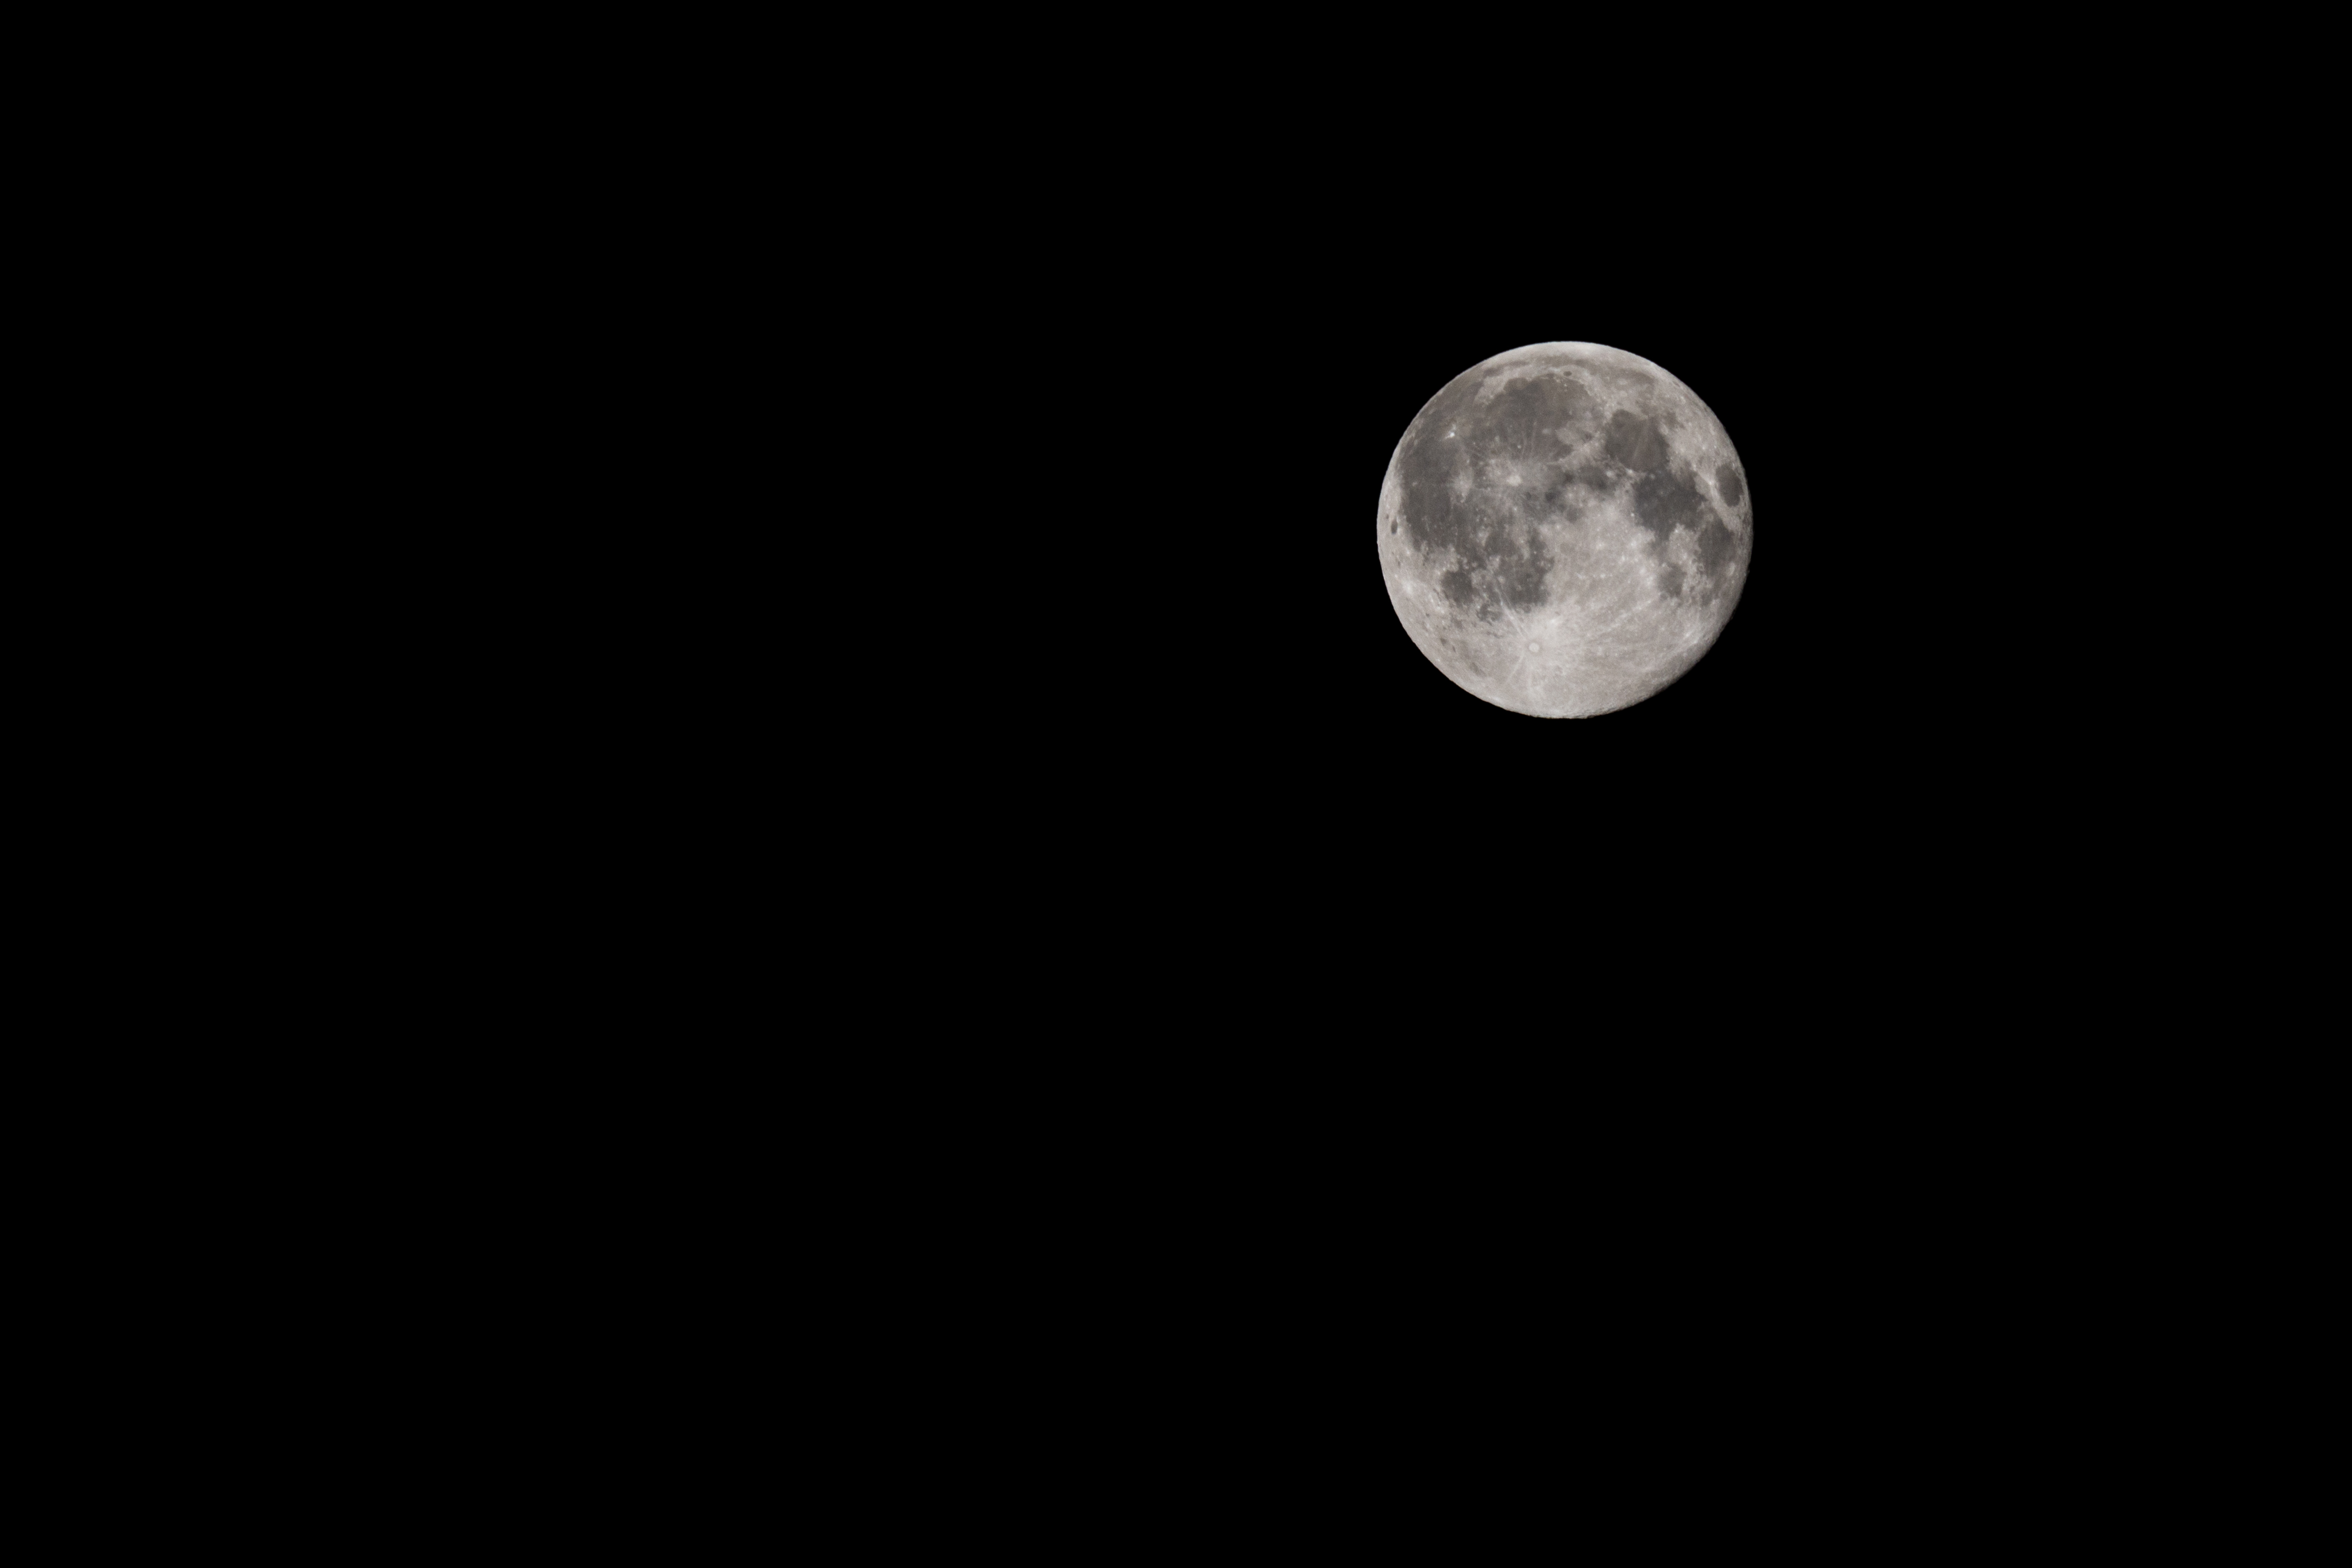 148529 download wallpaper Dark, Moon, Night, Black Background screensavers and pictures for free